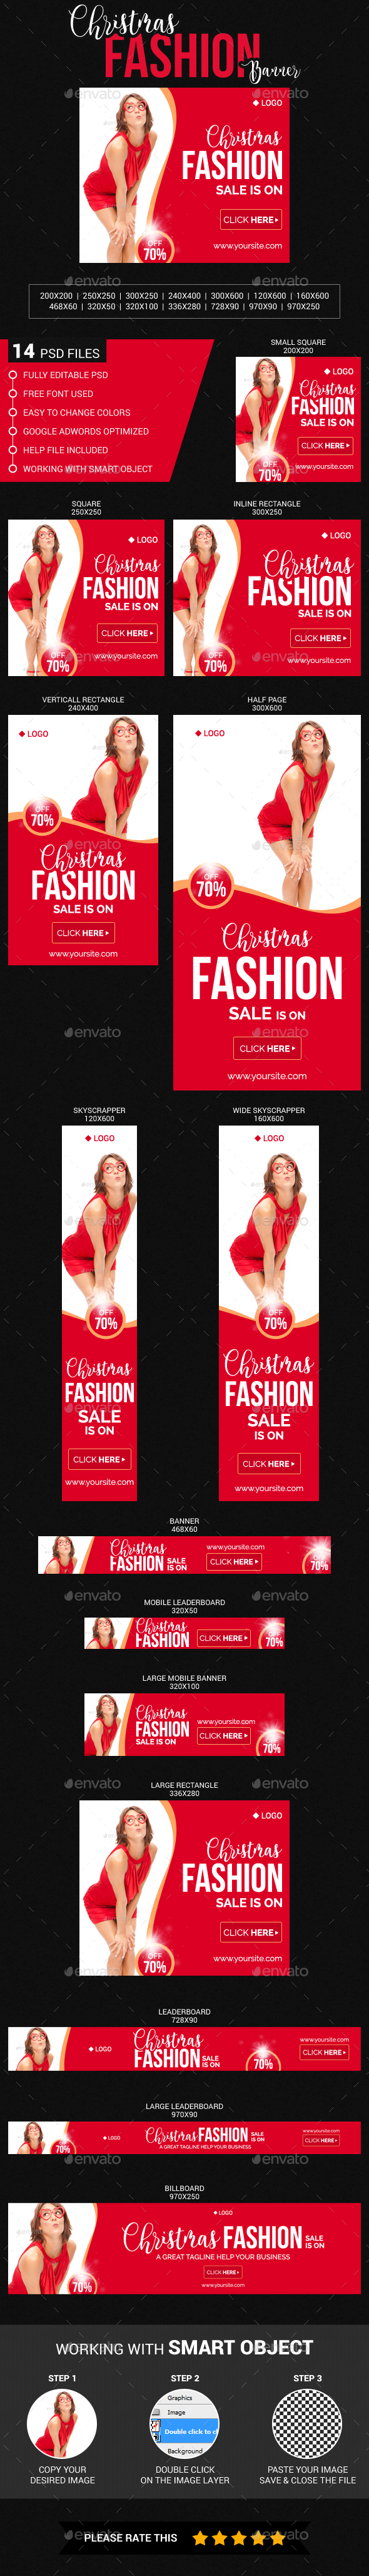 Christmas & New Year Fashion Sale - Banners & Ads Web Elements